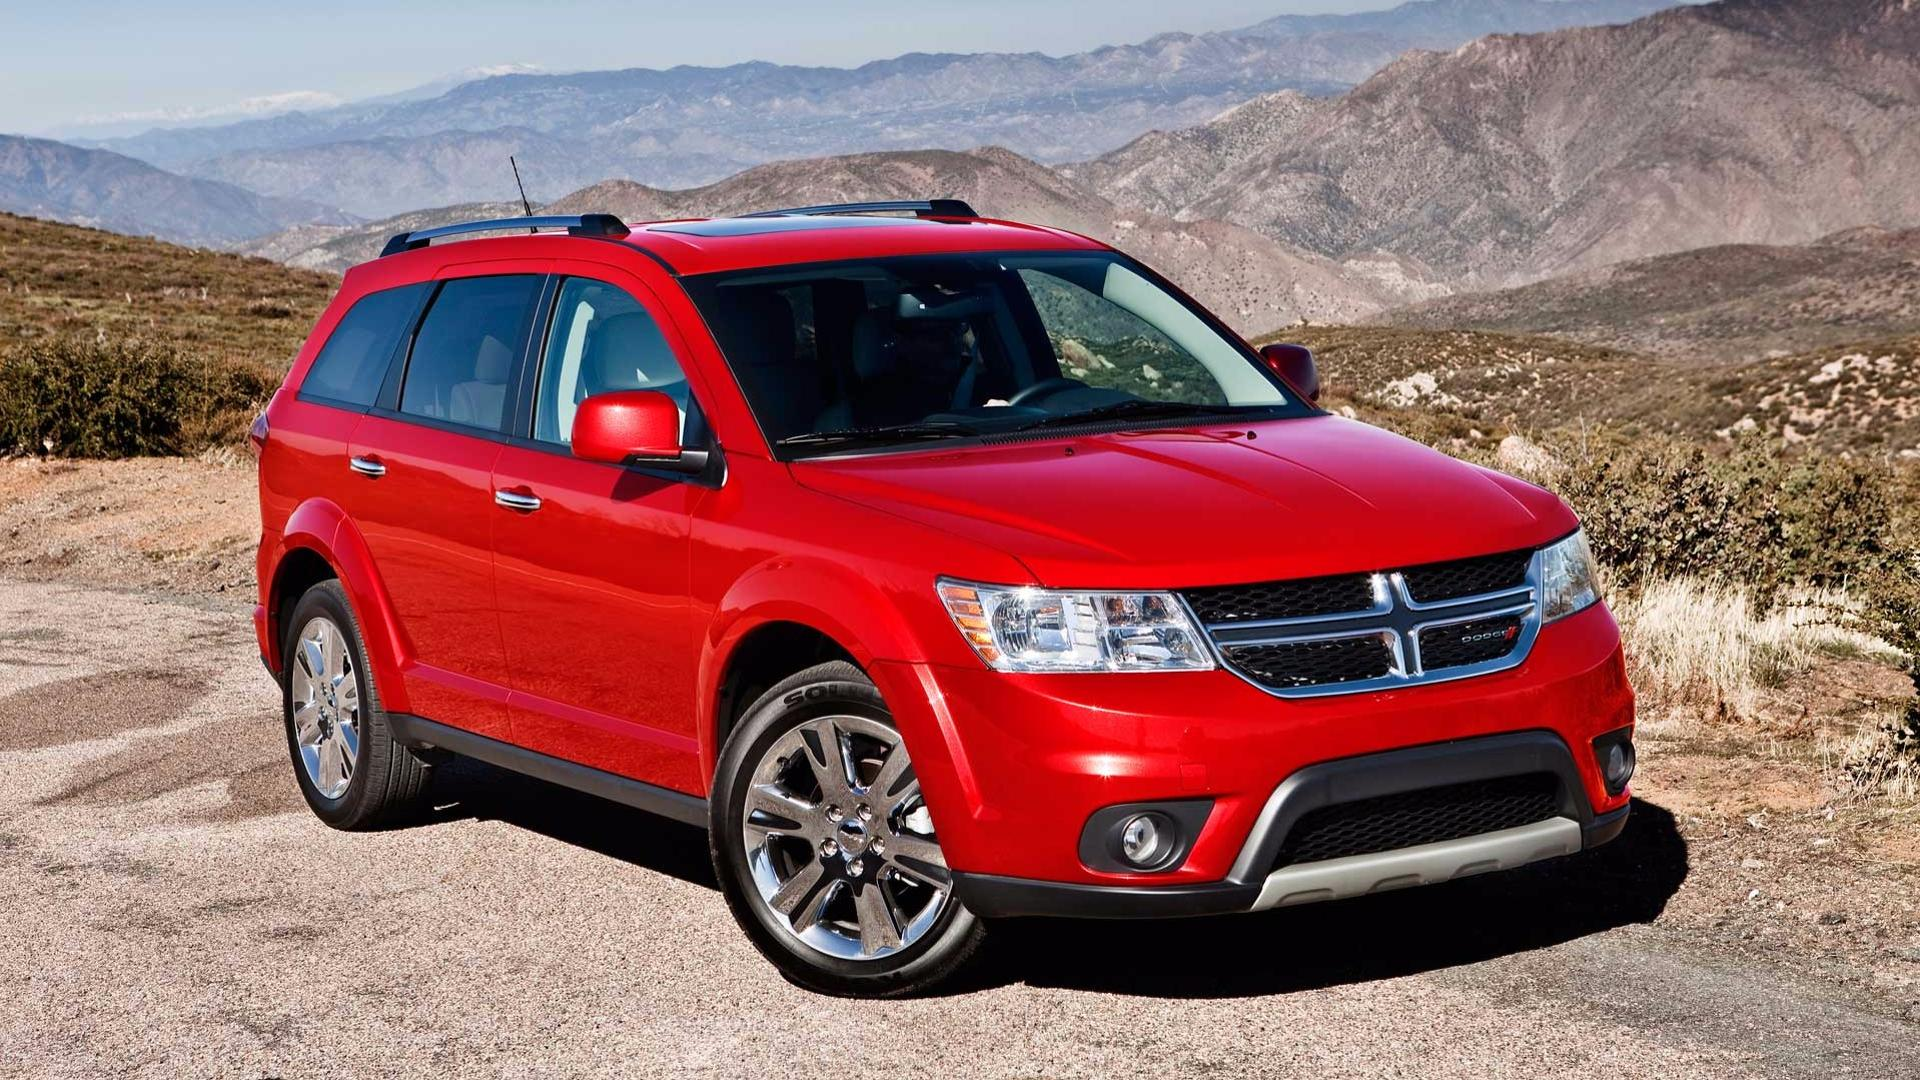 fca recalls 363k dodge journey crossovers for airbag issues rh motor1 com Dodge Journey Problems Complaints 2009 dodge journey door wiring harness recall